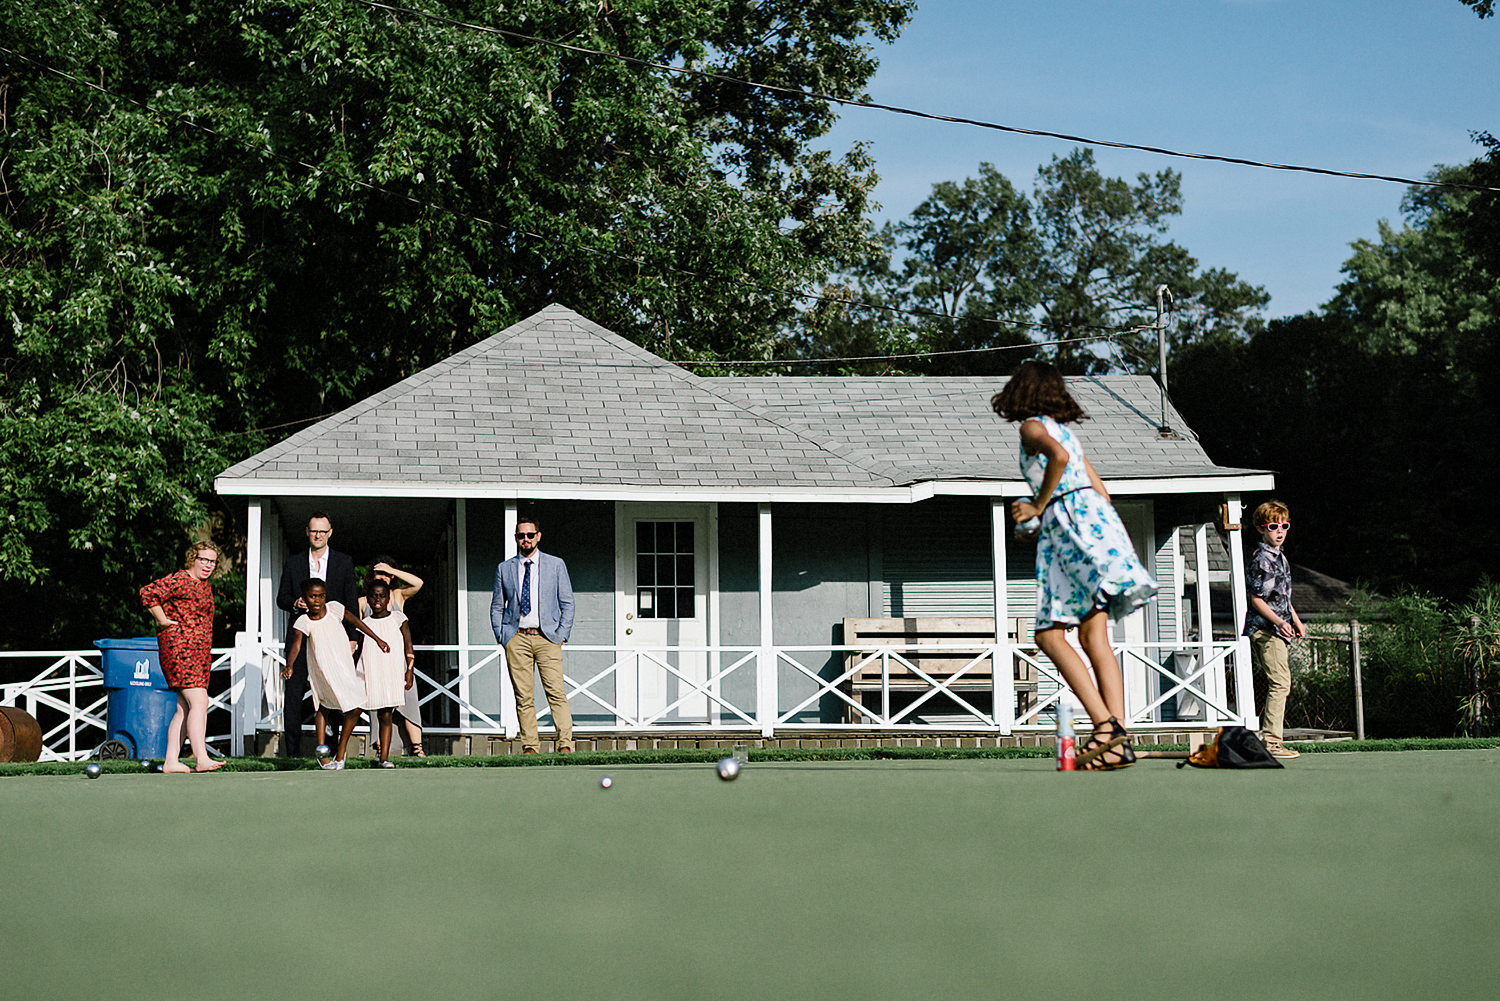 Best-Film-Photographers-Wedding-Photography-Toronto-Island-cAfe-Clubhouse-Wedding-Guests-bocce-ball.jpg